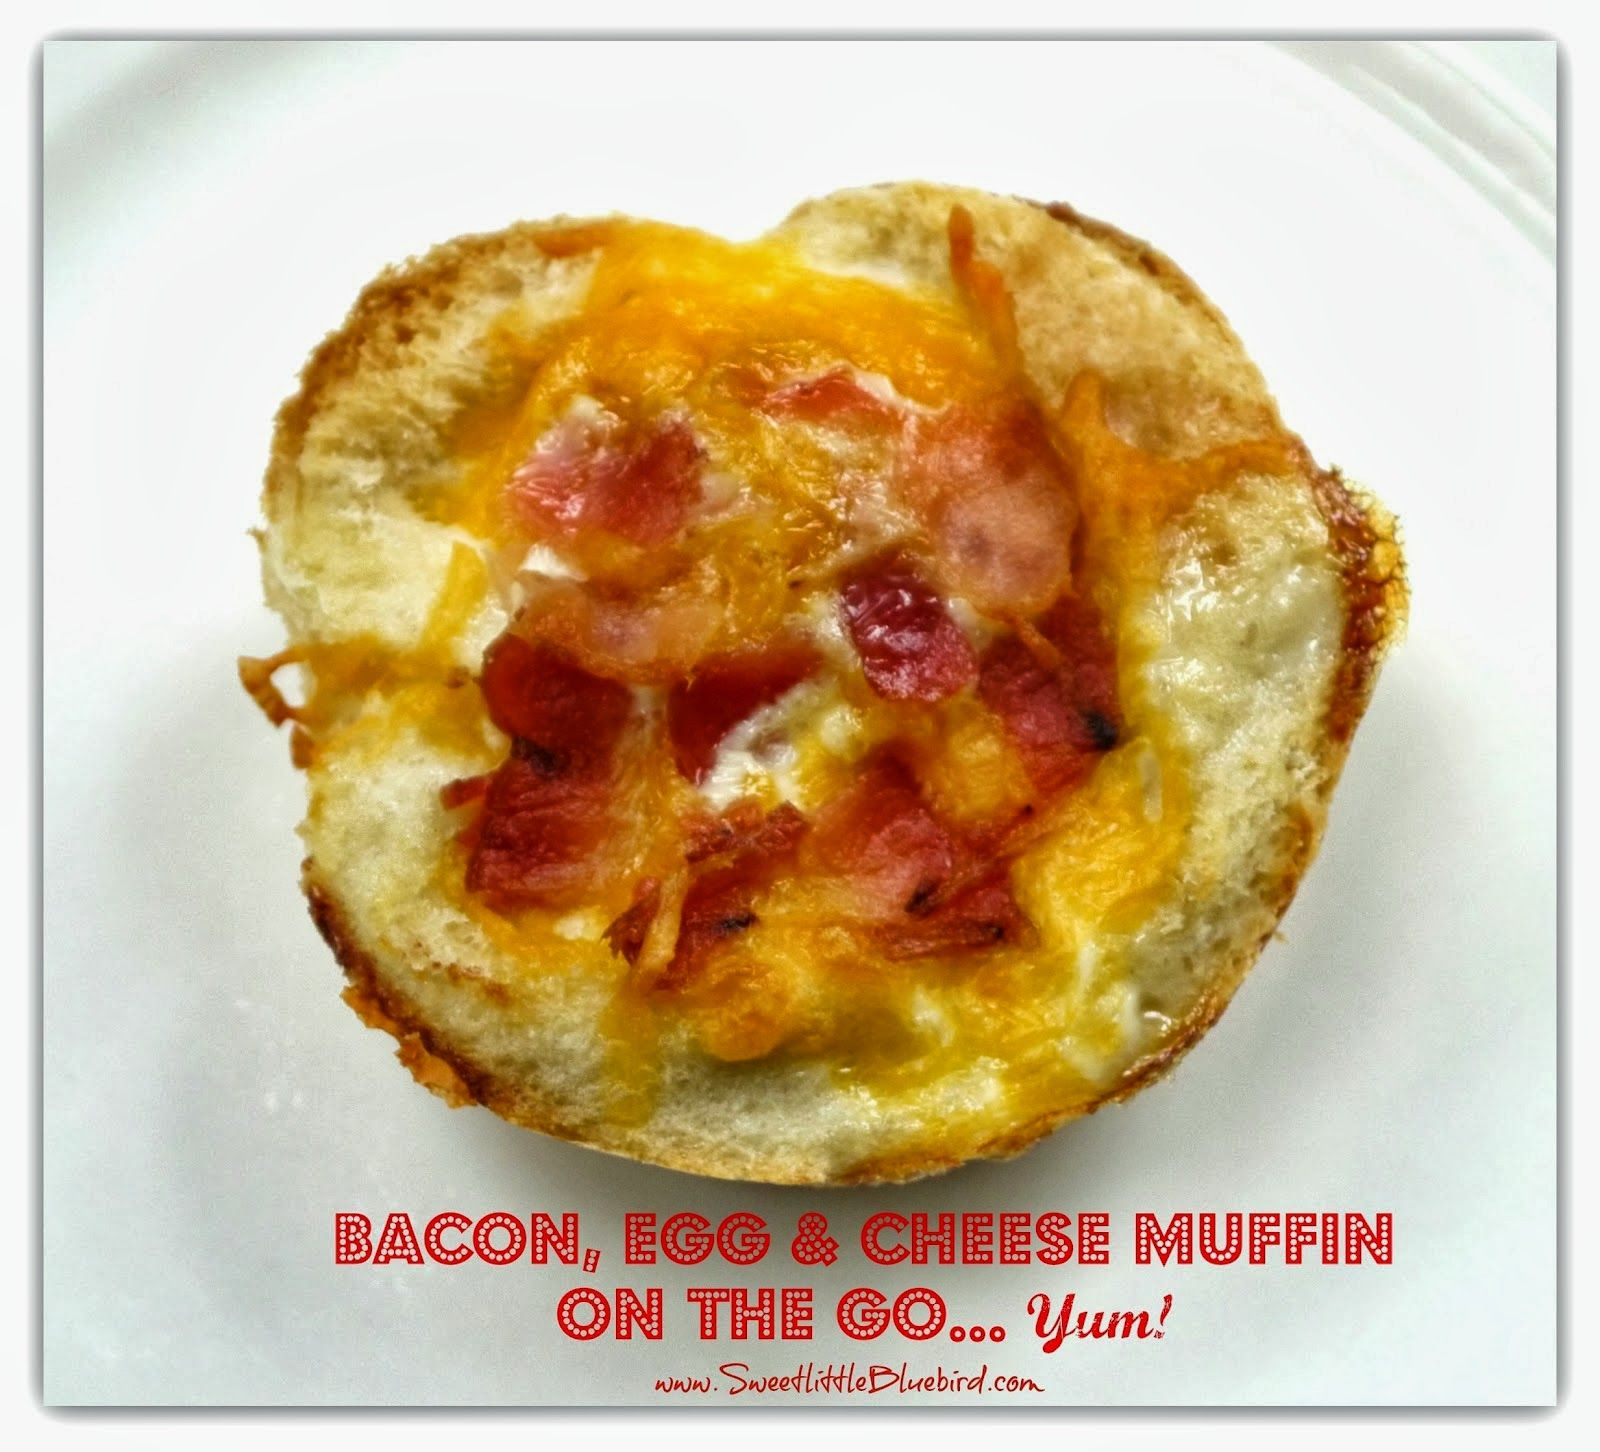 Bacon, Egg & Cheese Muffins